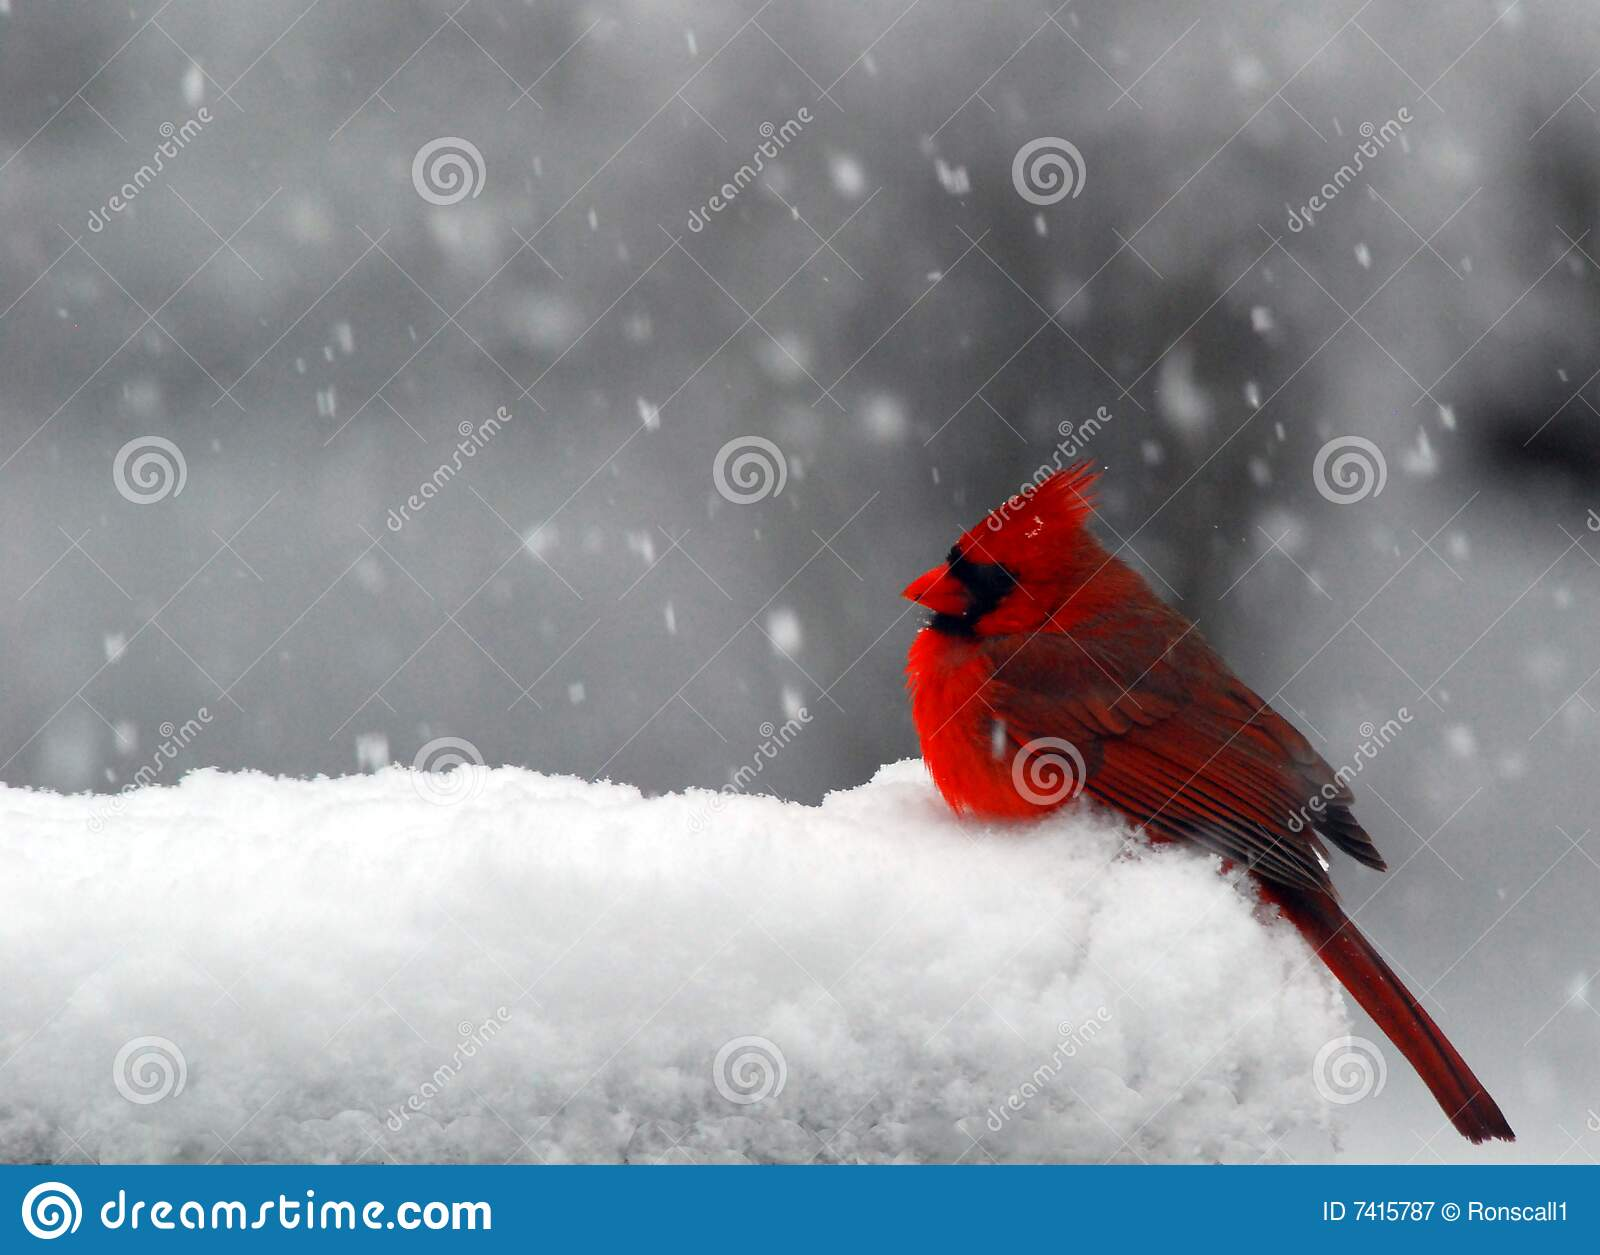 Falling Snow Wallpaper Widescreen Cardinal In Snow Stock Image Image Of Freezing Snow